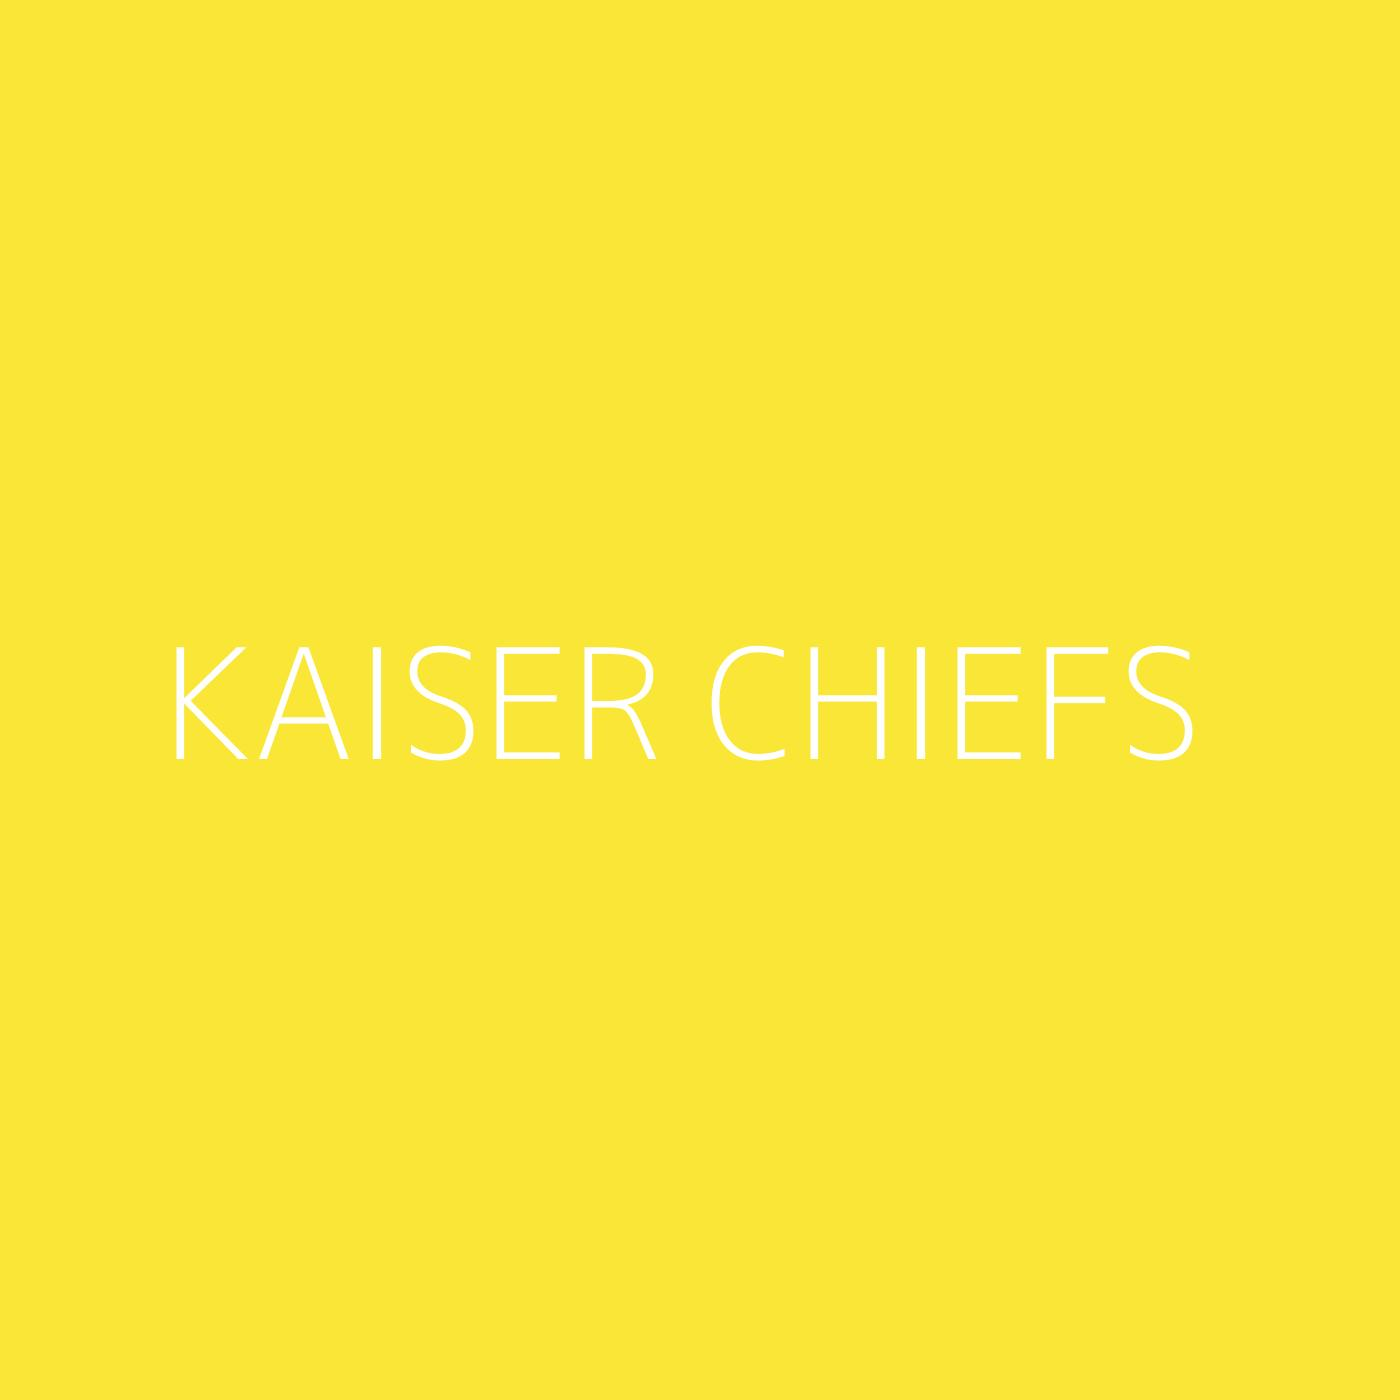 Kaiser Chiefs Playlist Artwork